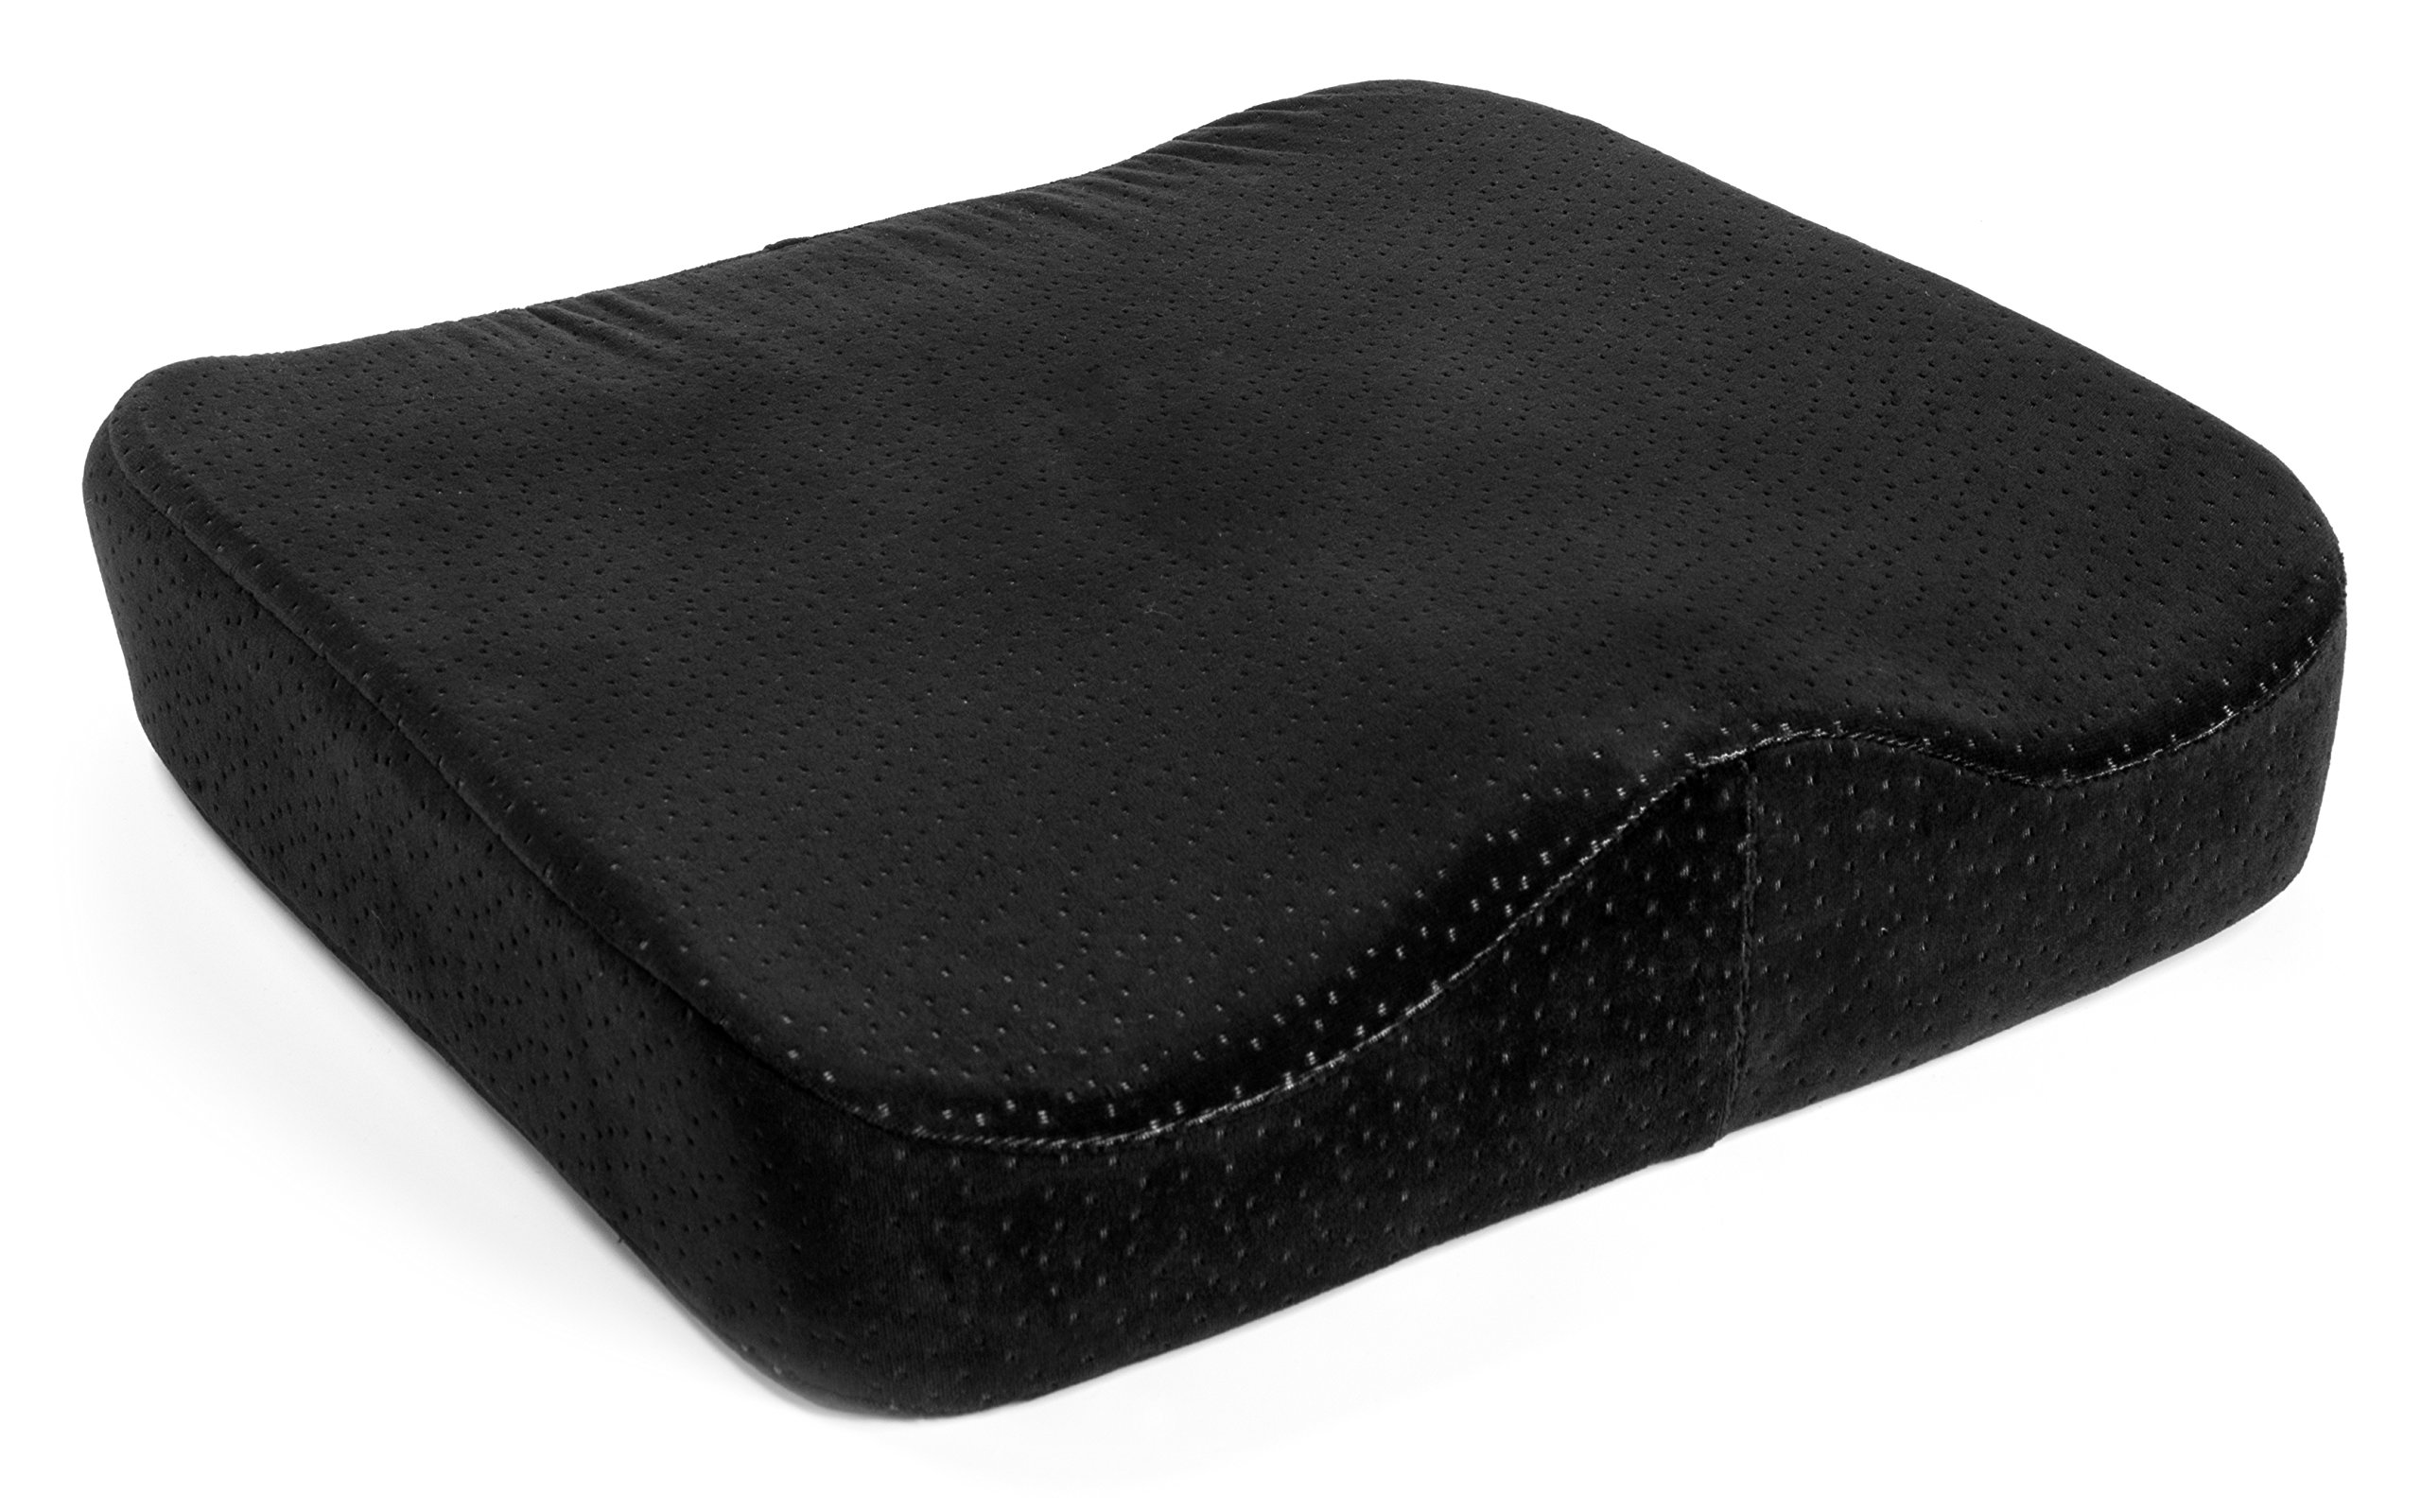 memory foam seat cushion luxury large office chair pad. Black Bedroom Furniture Sets. Home Design Ideas